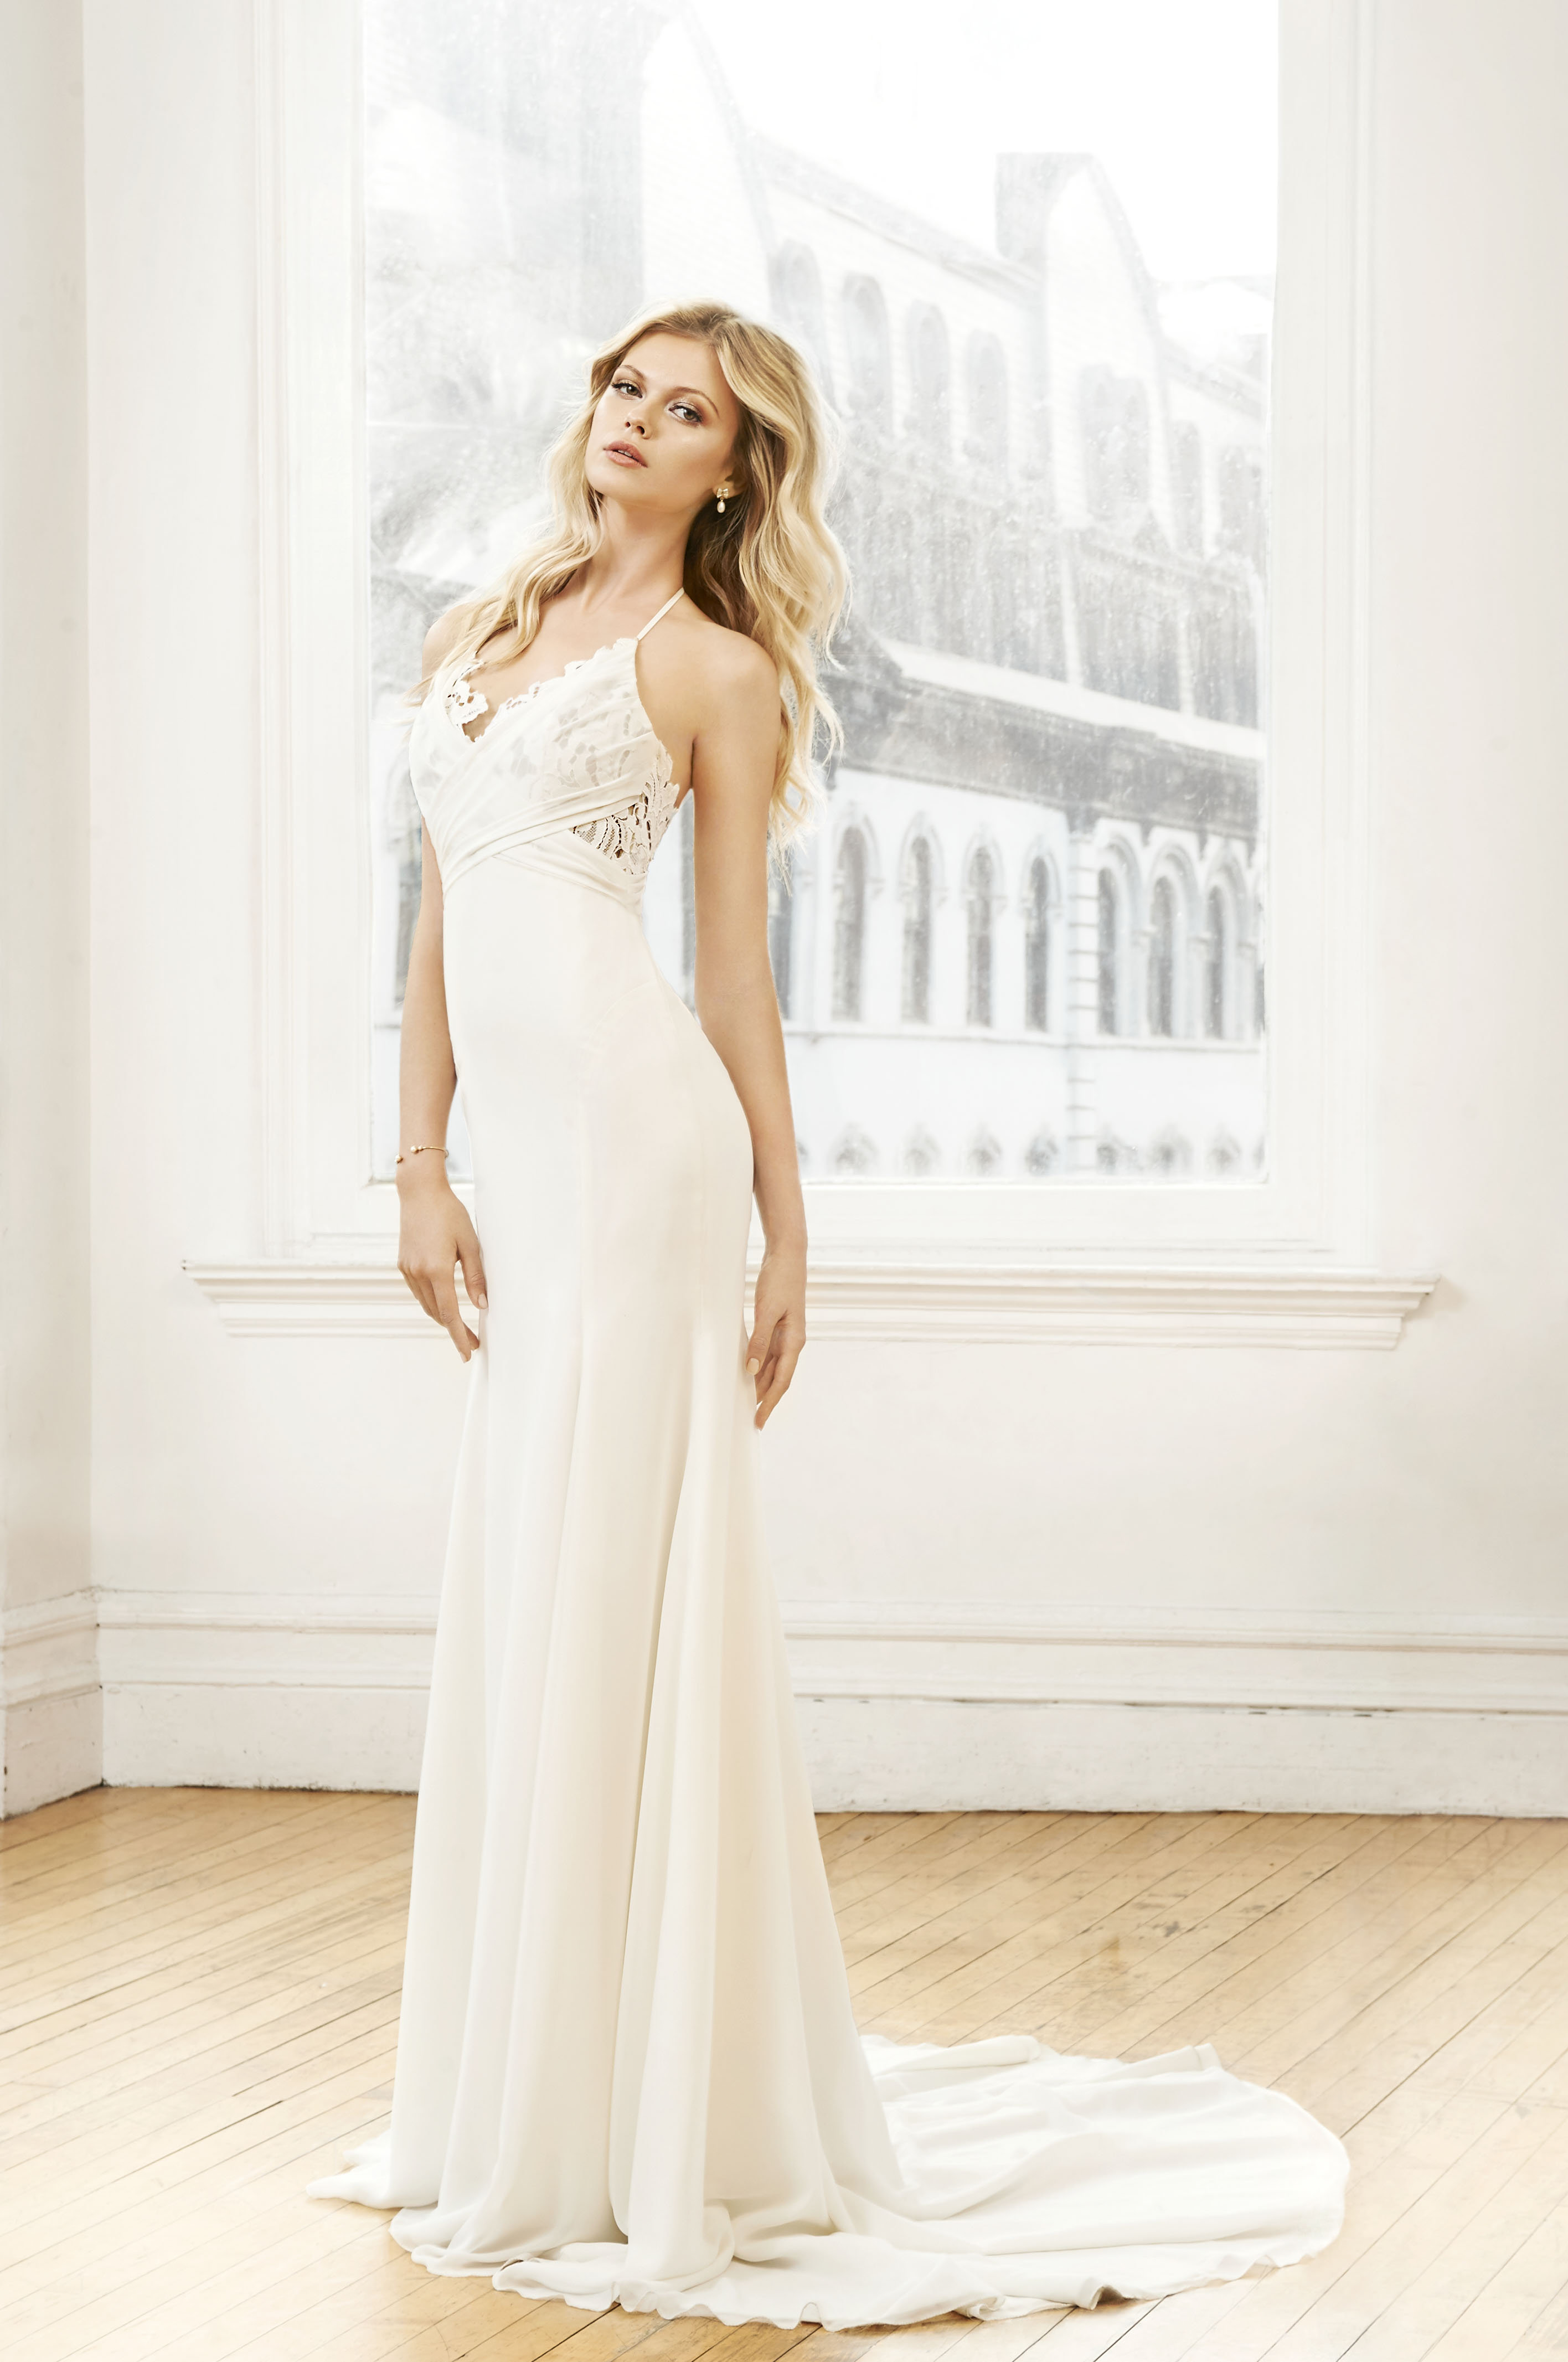 Bridal Gowns And Wedding Dresses By Jlm Couture Style 1655 Saylor